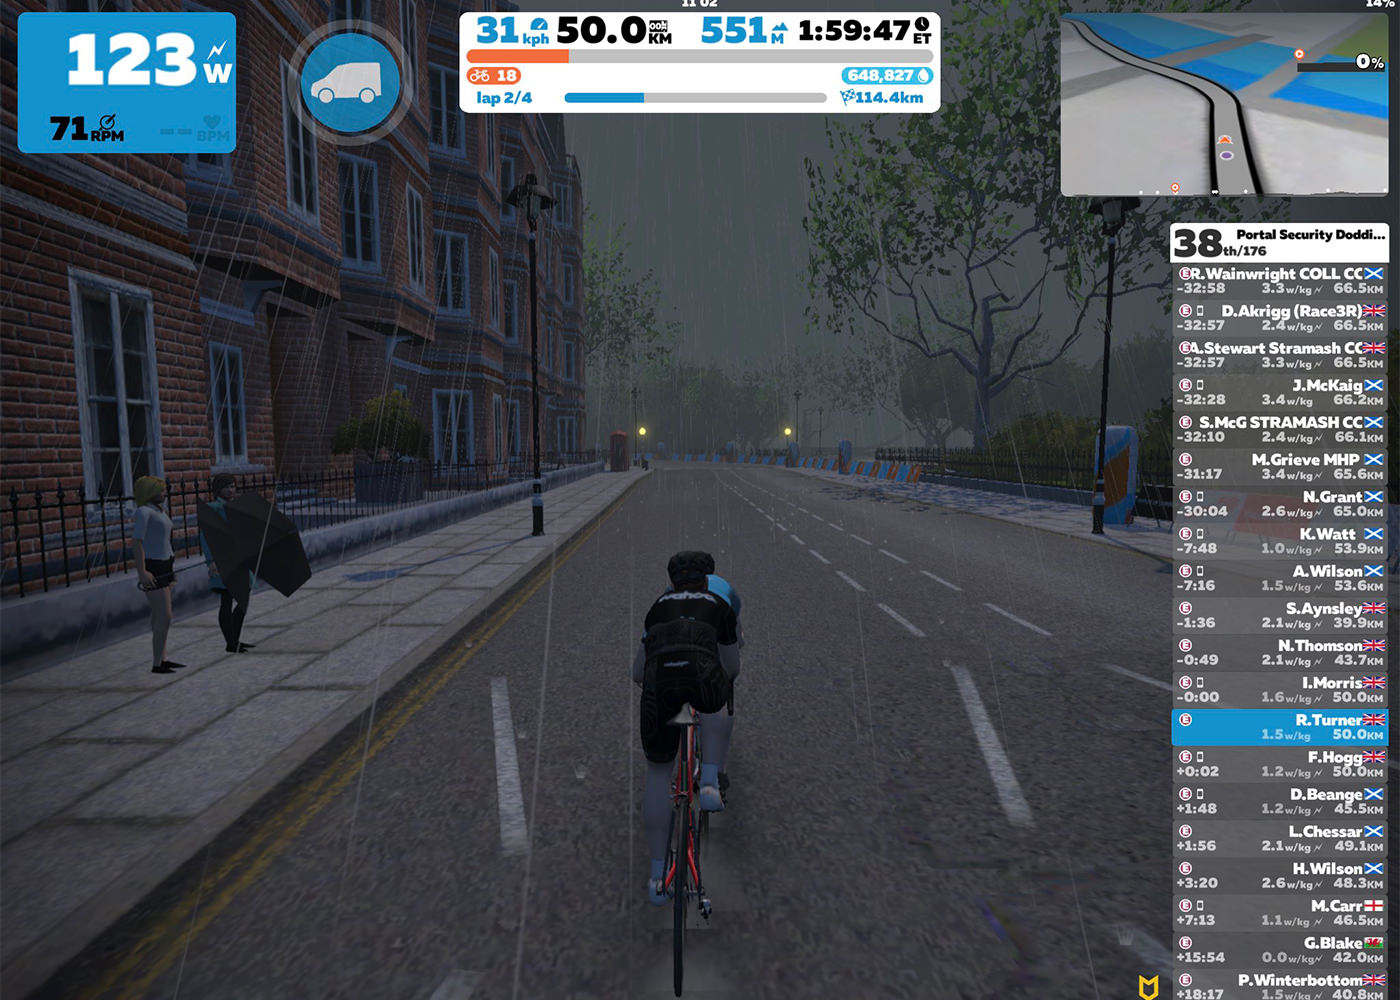 Doddie's Virtual Ride 2020 participant 2